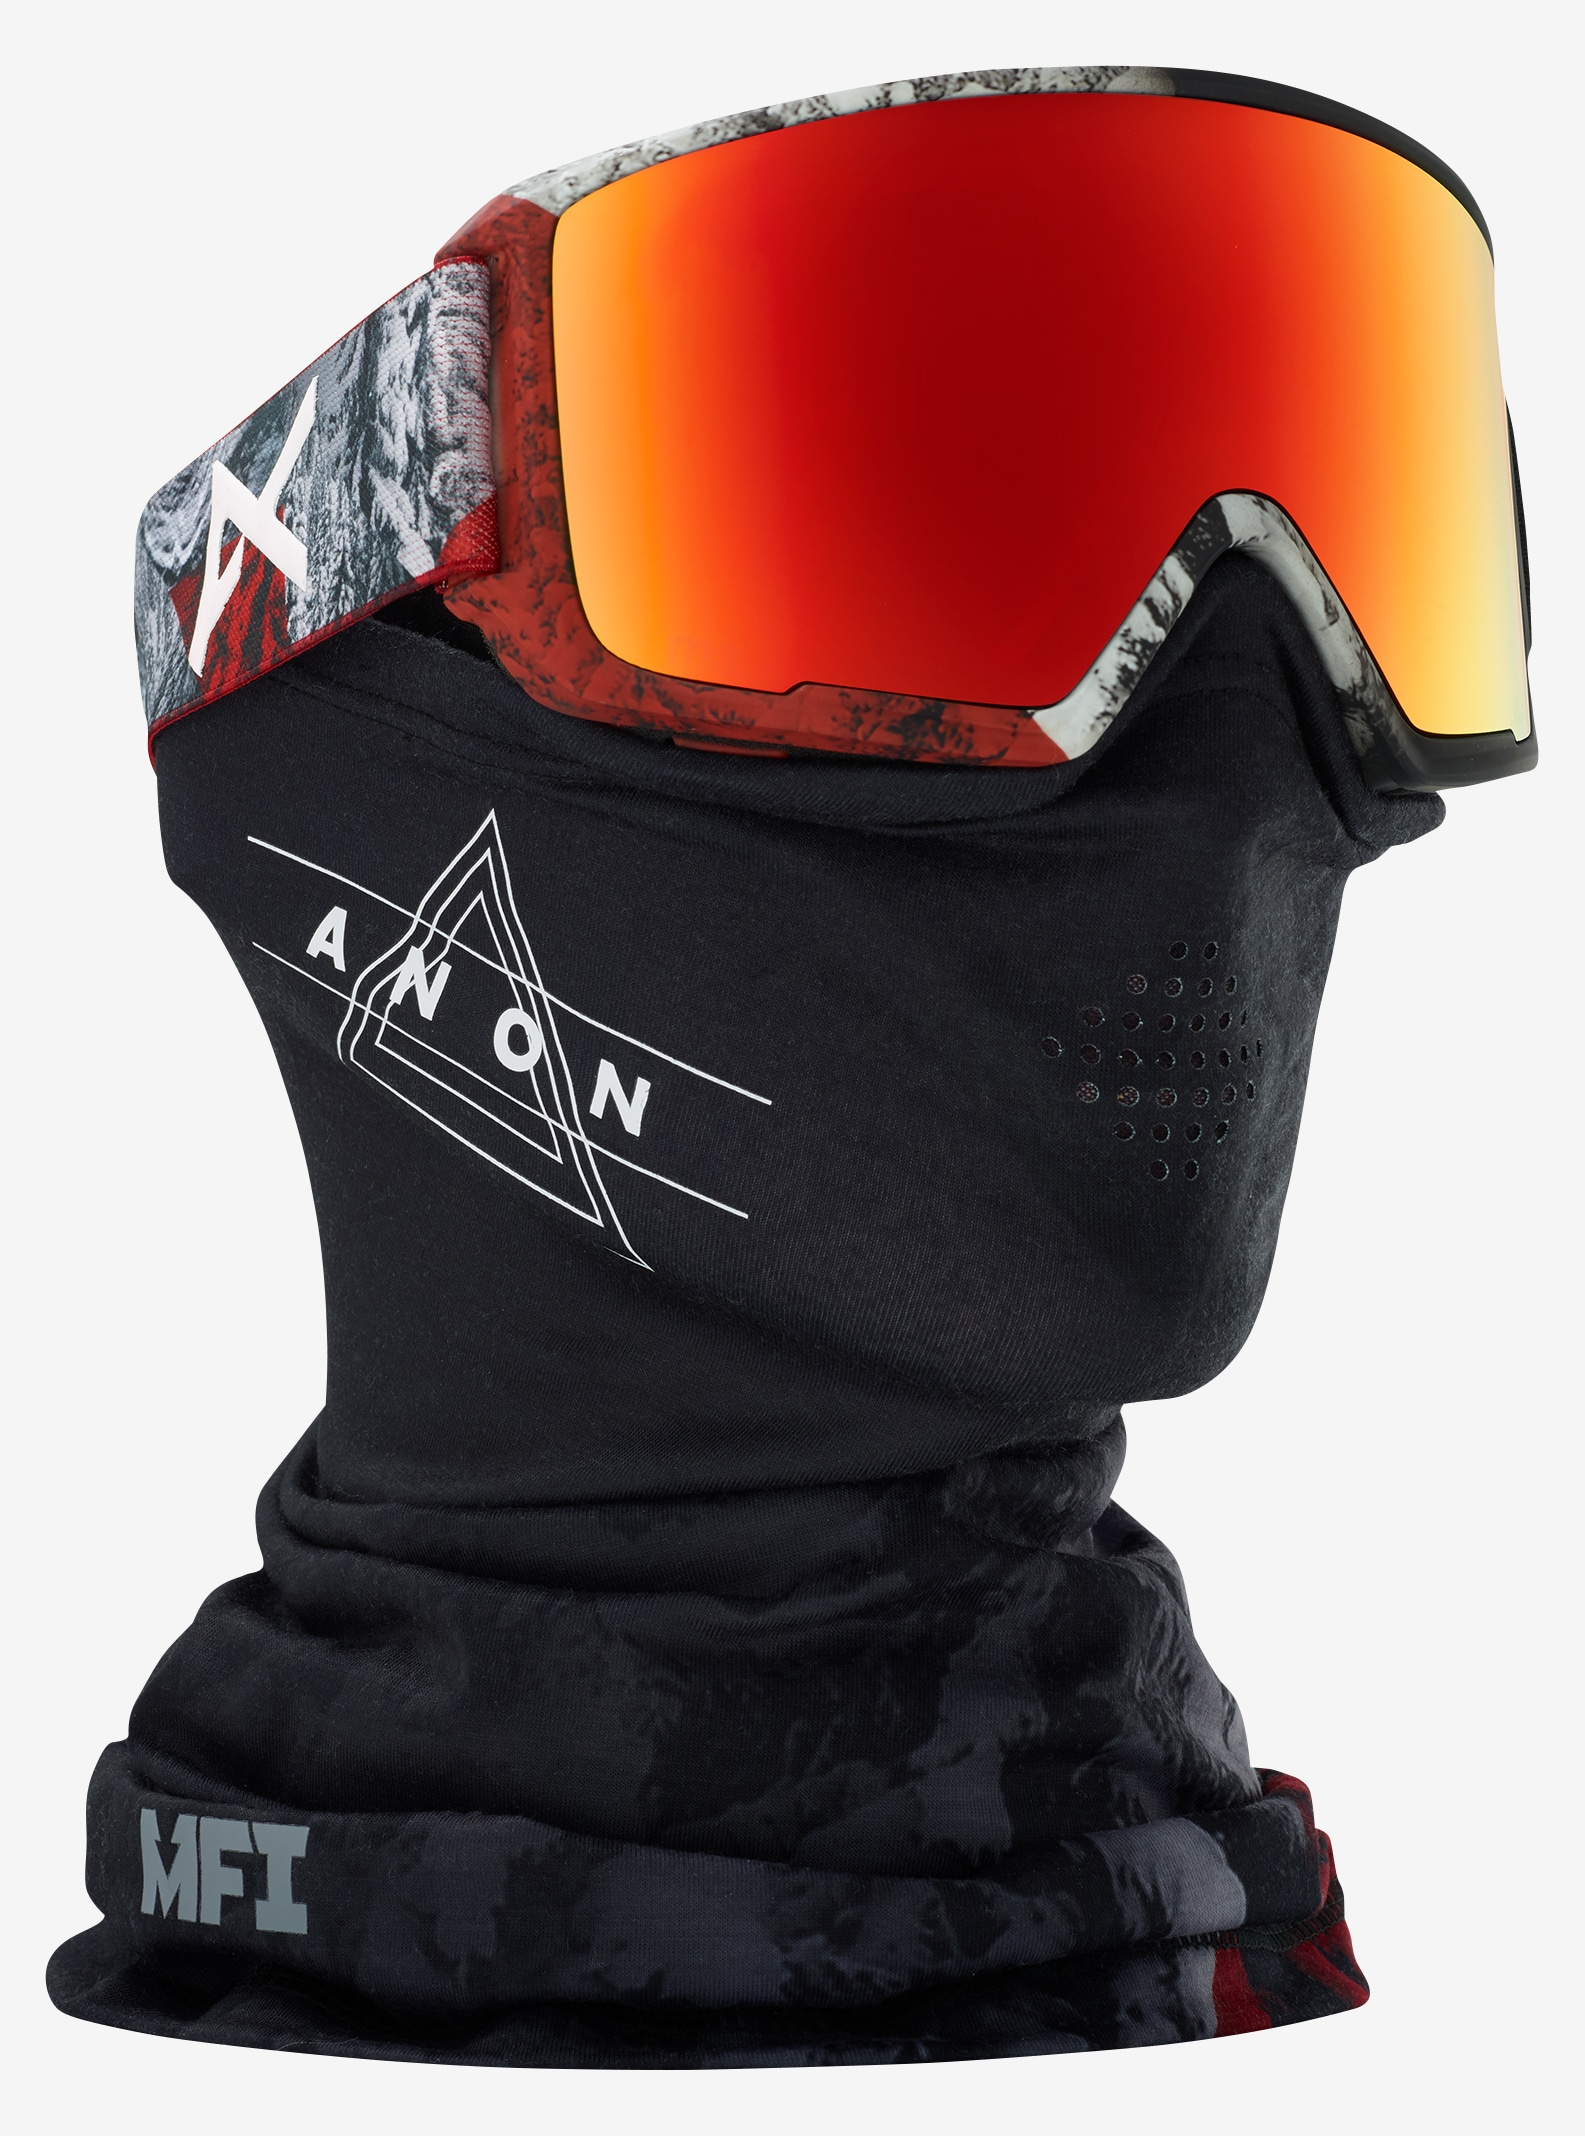 Men's Anon M3 Goggle shown in Frame: Red Planet, Lens: SONAR Red by Zeiss, +FM